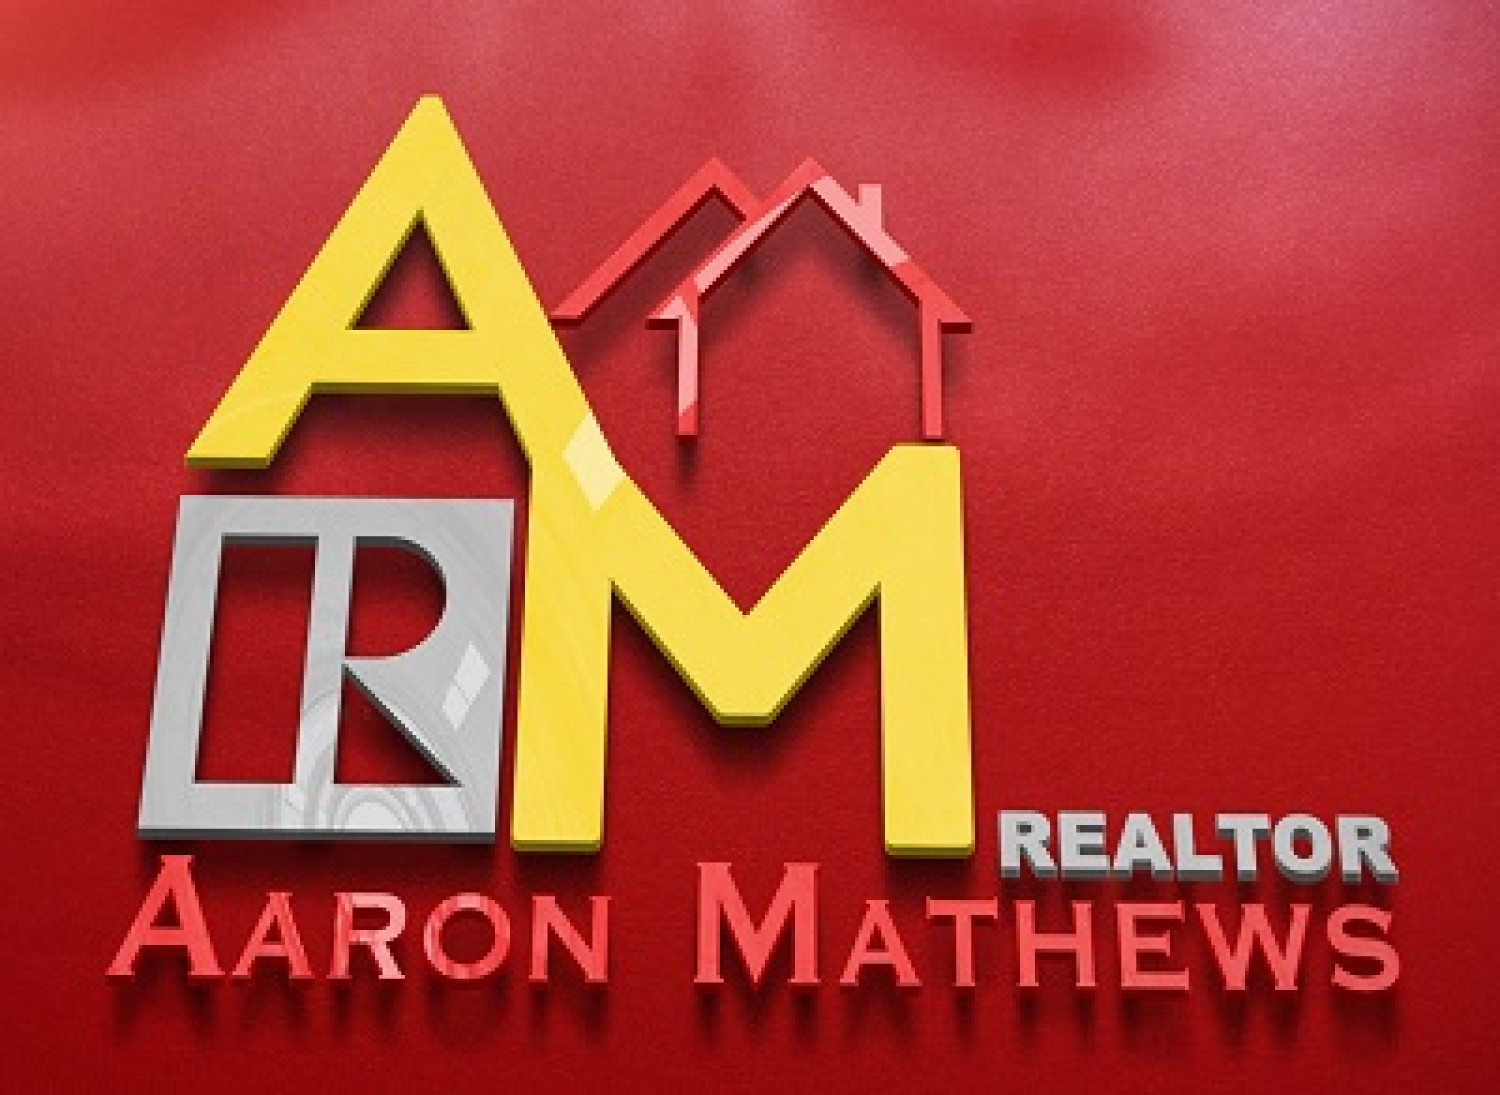 Aaron Mathews Realtor Infographic